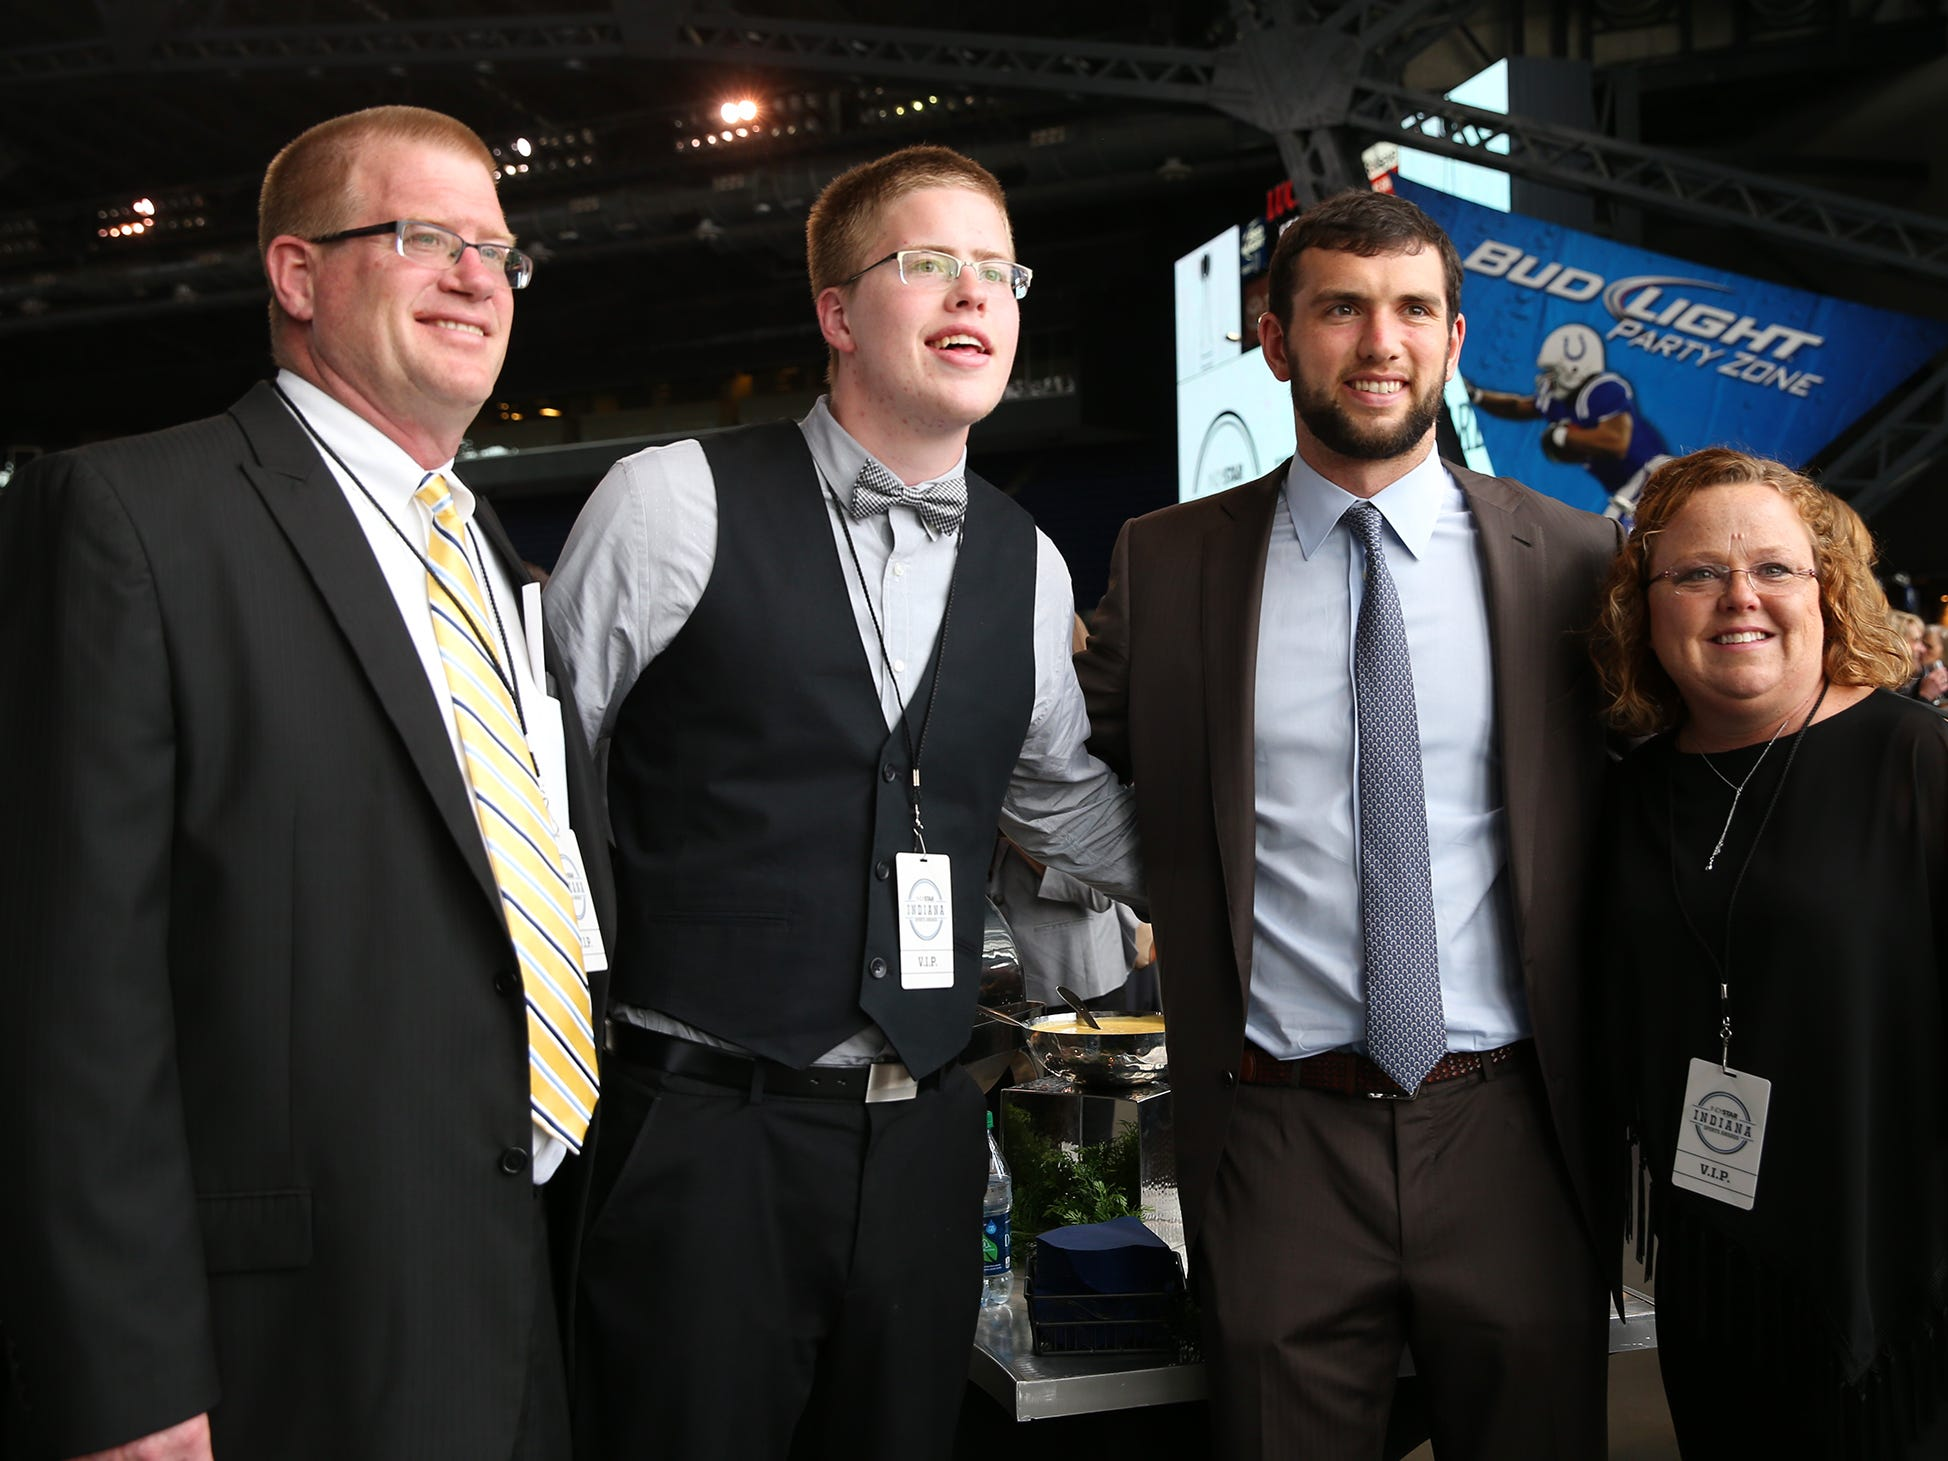 Colts' quarterback Andrew Luck poses for a picture with David and Lisa Speidel along with their son, Josh, before the  IndyStar Sports Awards, April 28, 2016 at Lucas Oil Stadium.